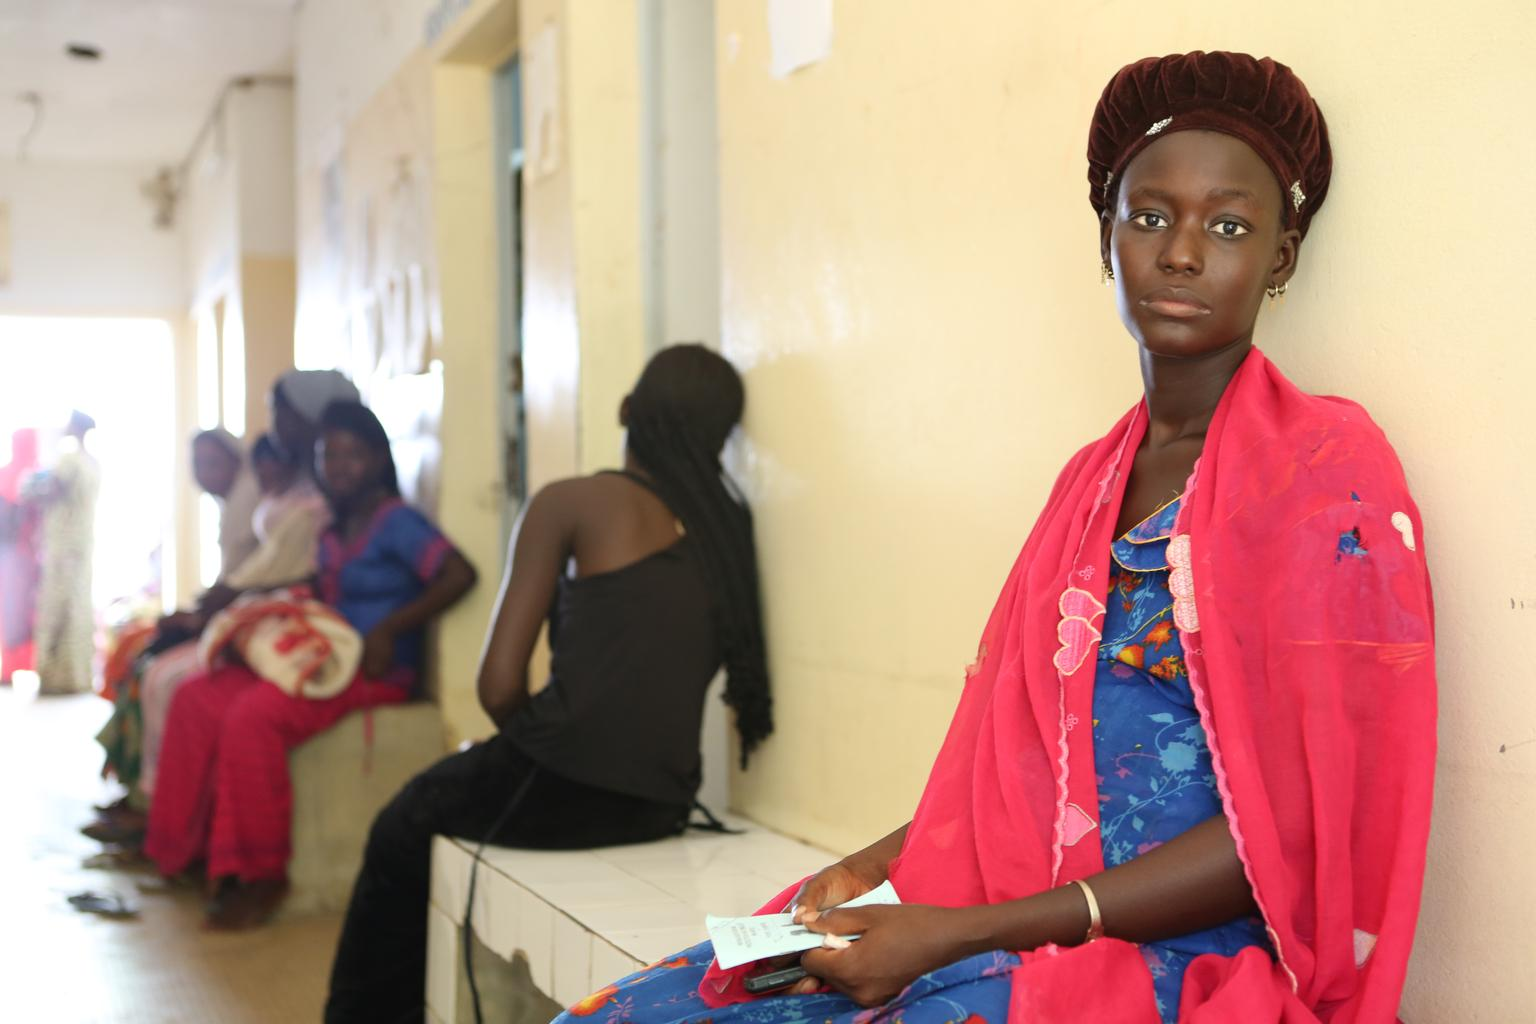 20 year old Fatim from Senegal, pregnant with her third baby, waits to be immunised against Maternal and Neonatal Tetanus.